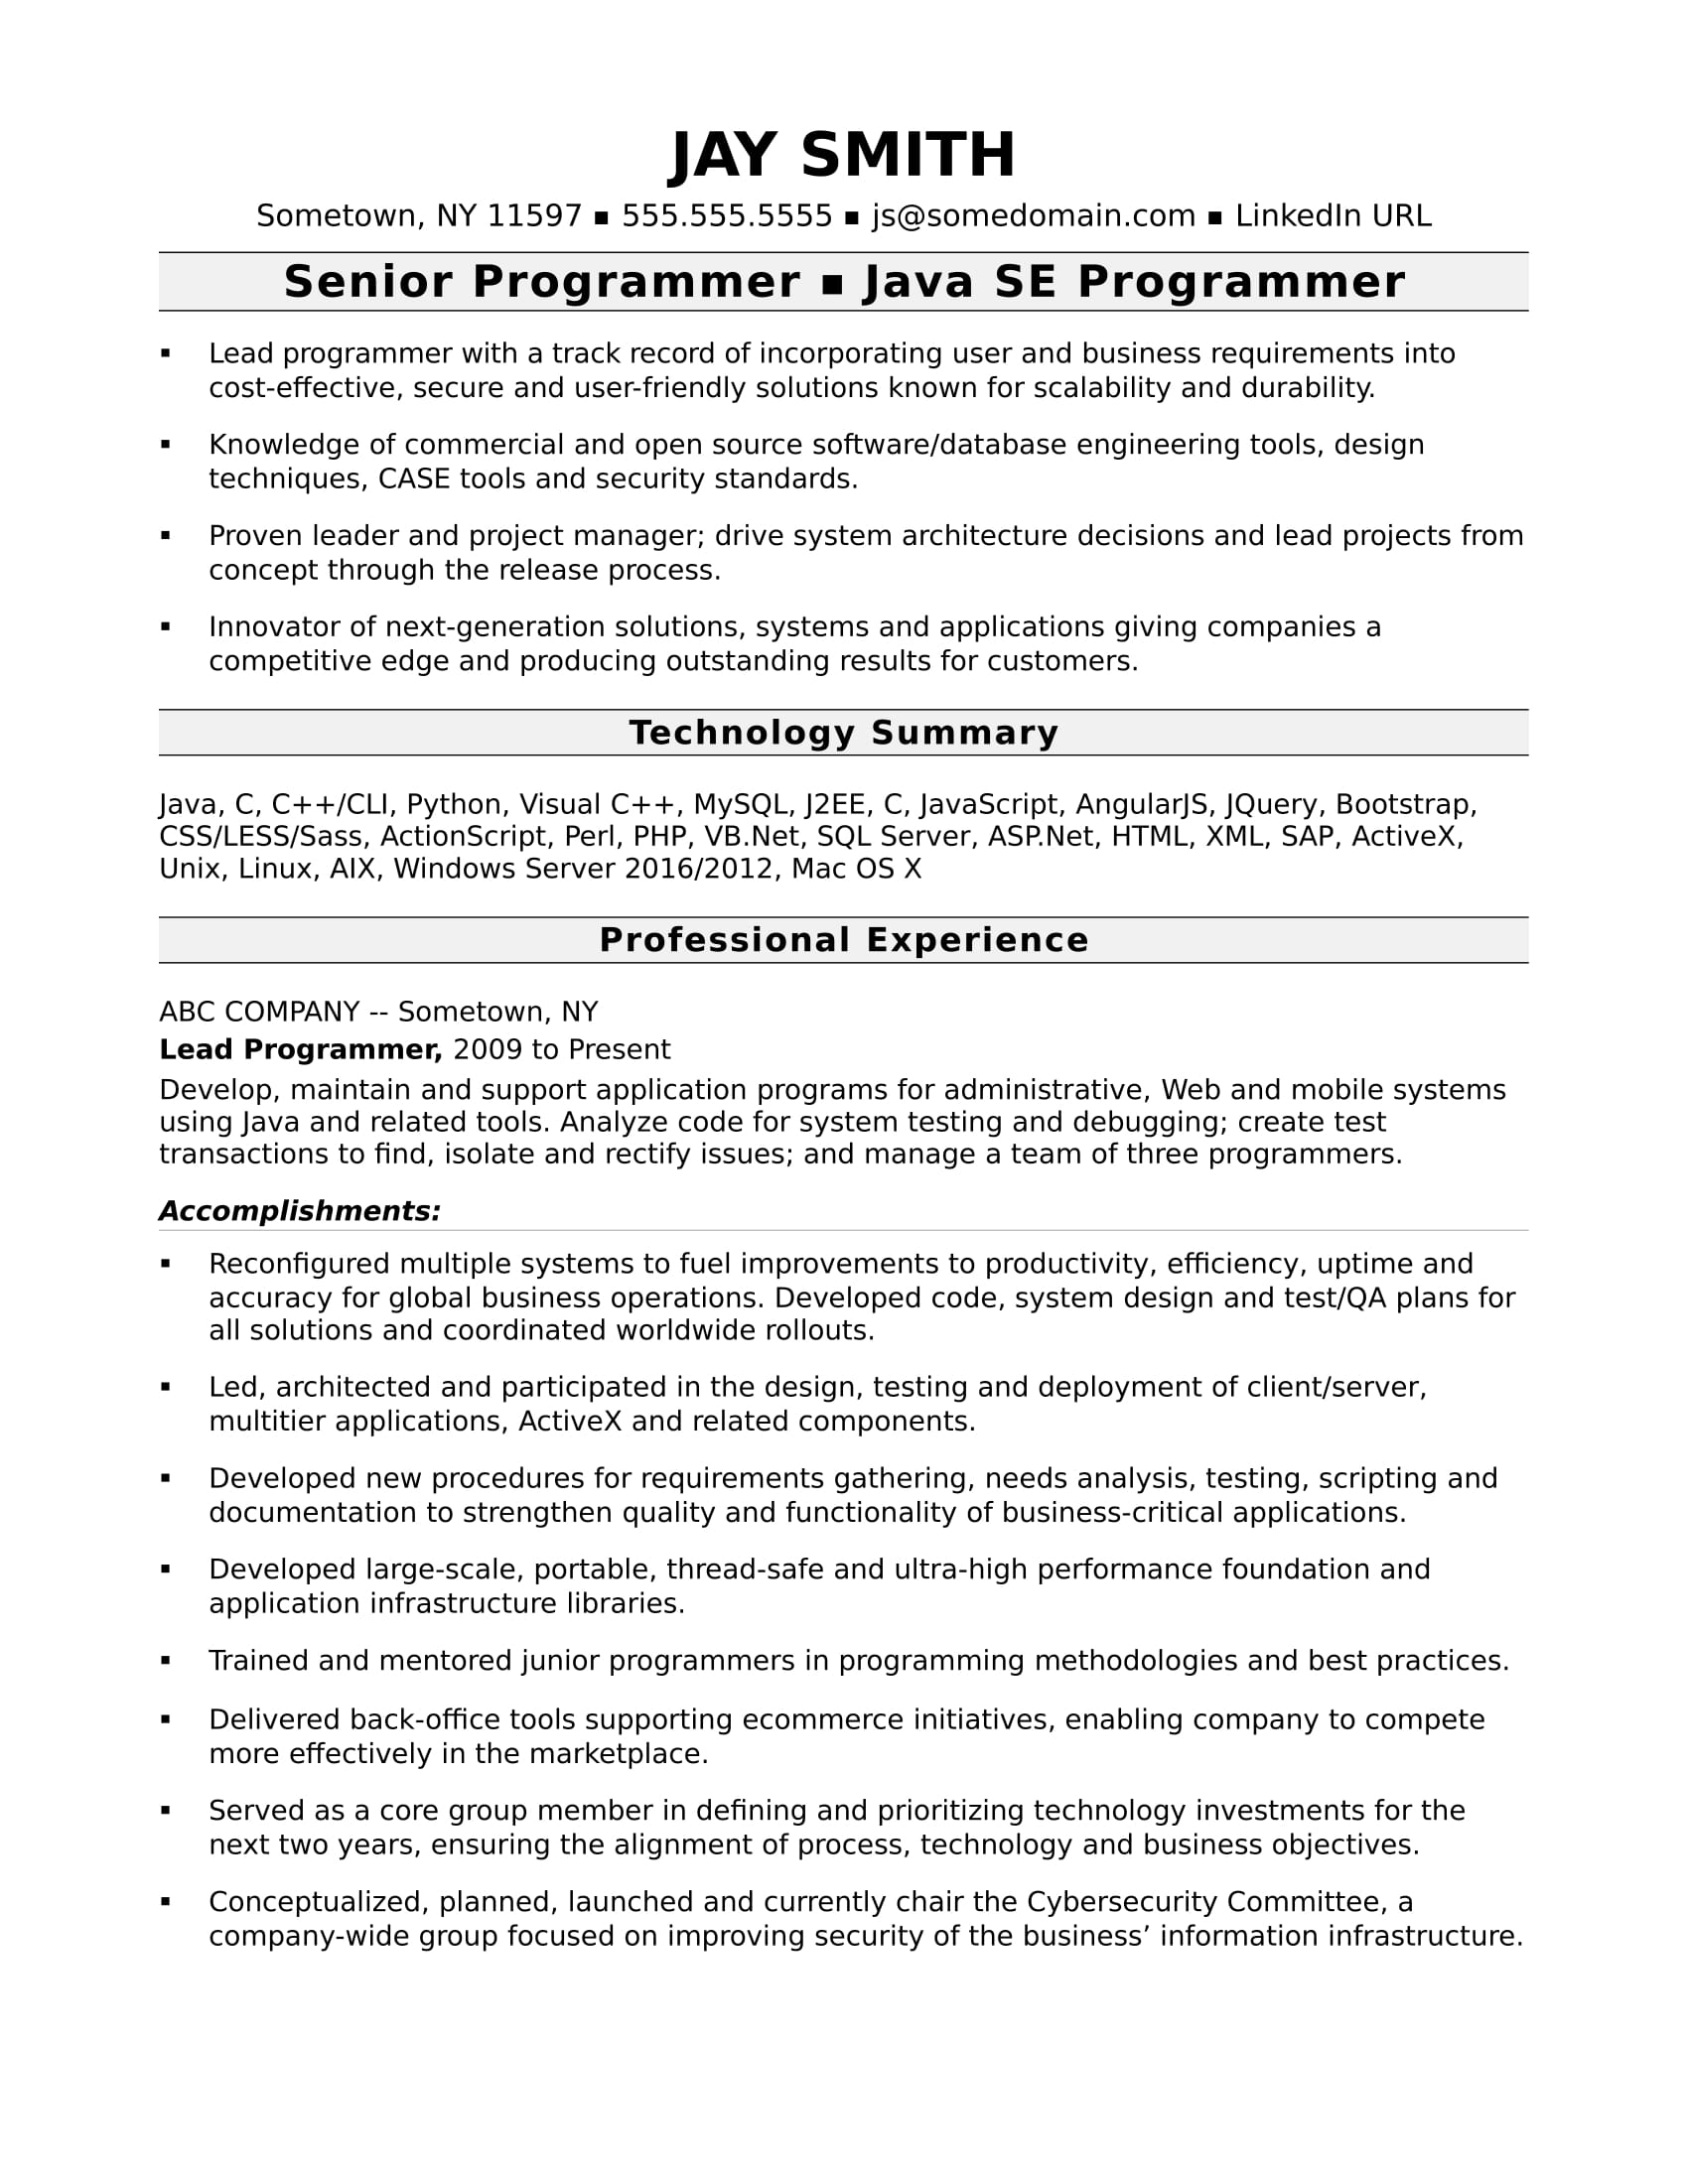 programmer resume template monster library unsubscribe computer experienced summary for Resume Resume Library Unsubscribe